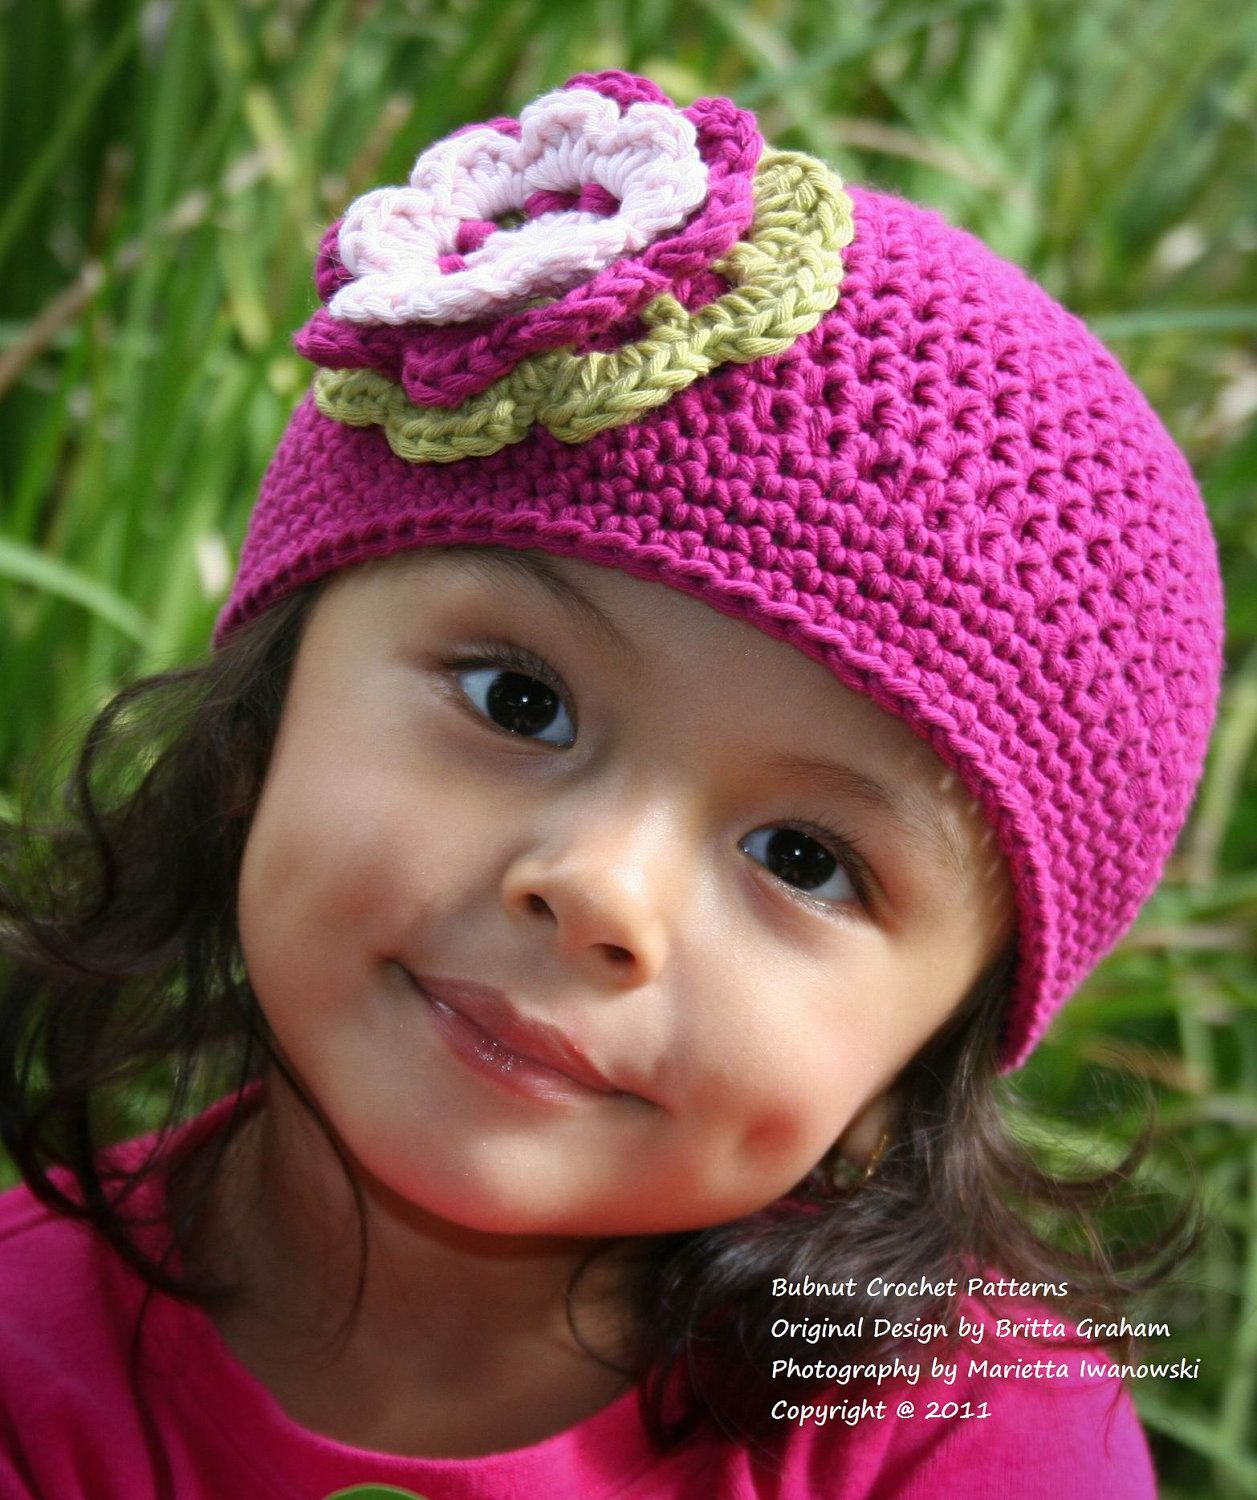 Crochet hats crochet hat pattern free easy crochet patterns crochet hats crochet hat pattern free easy crochet patterns girls crochet hat bankloansurffo Image collections